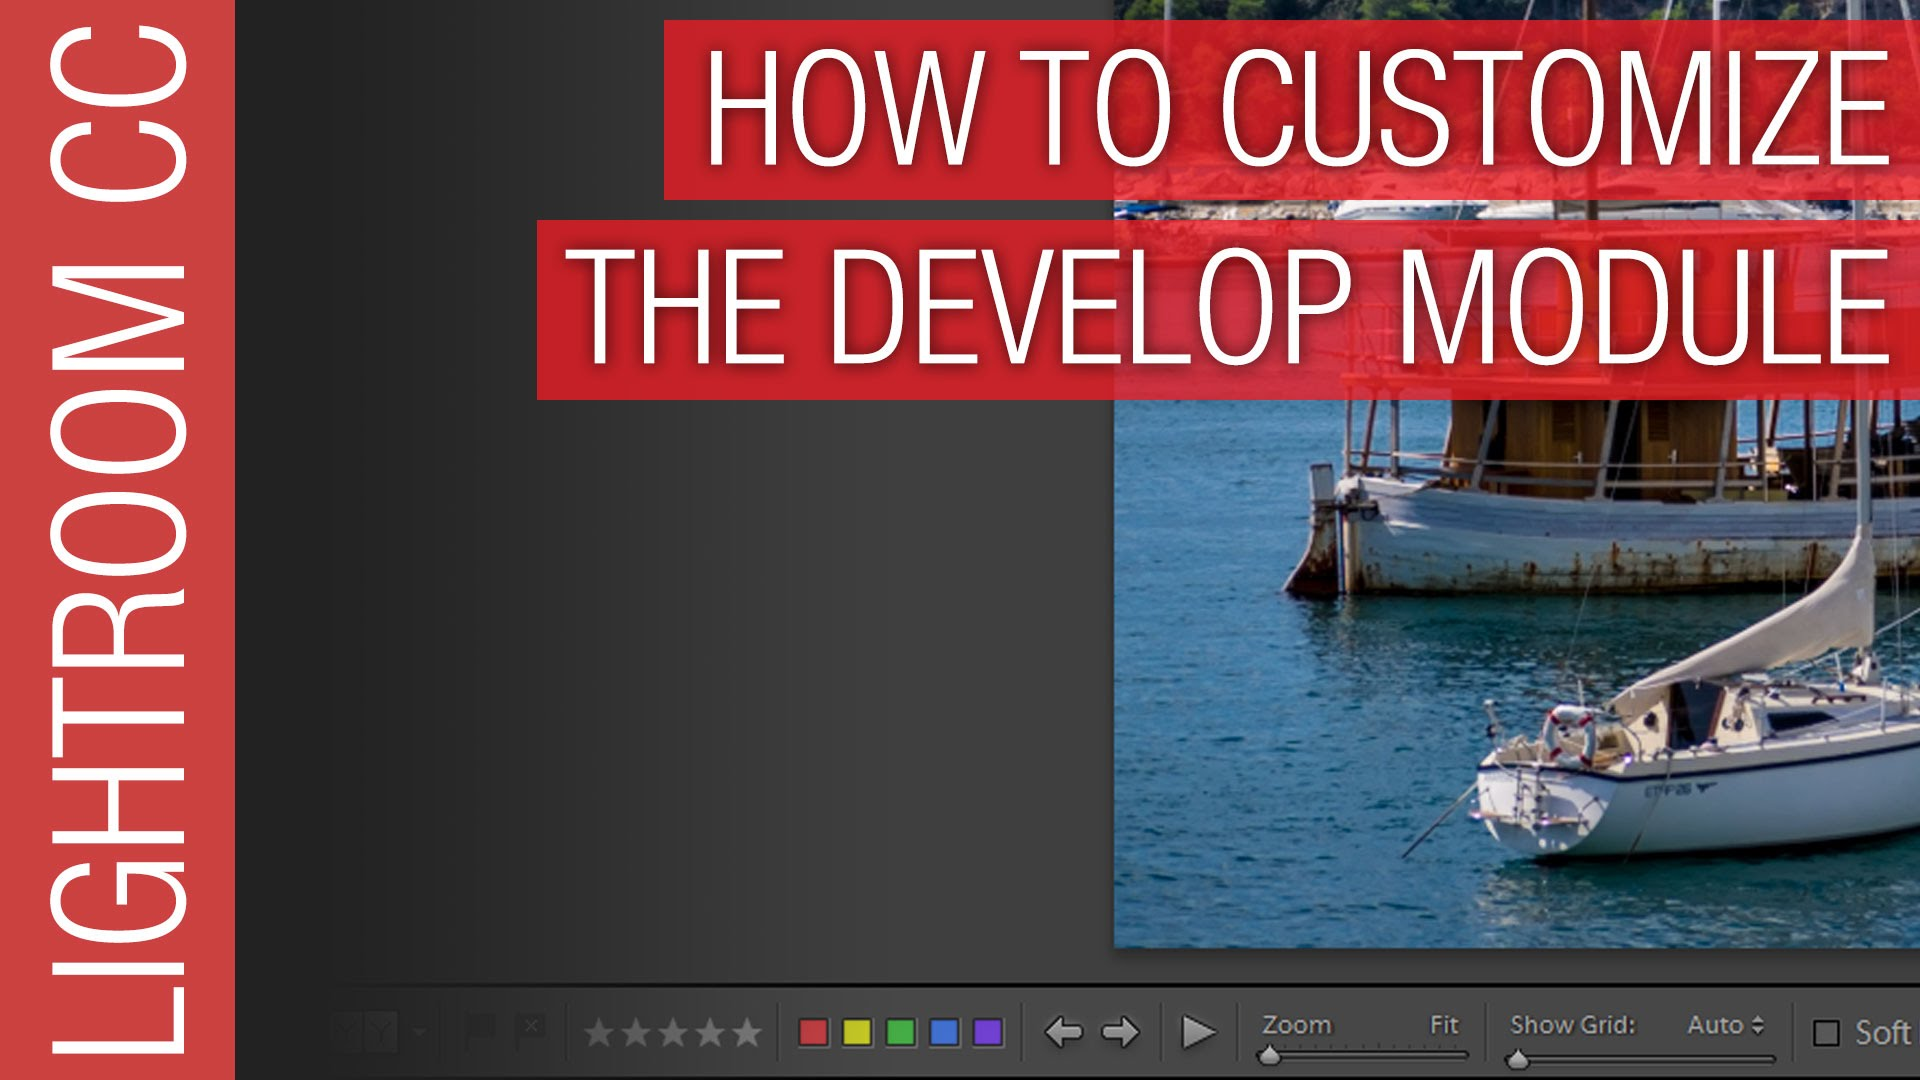 How To Customize the Adobe Lightroom Develop Module